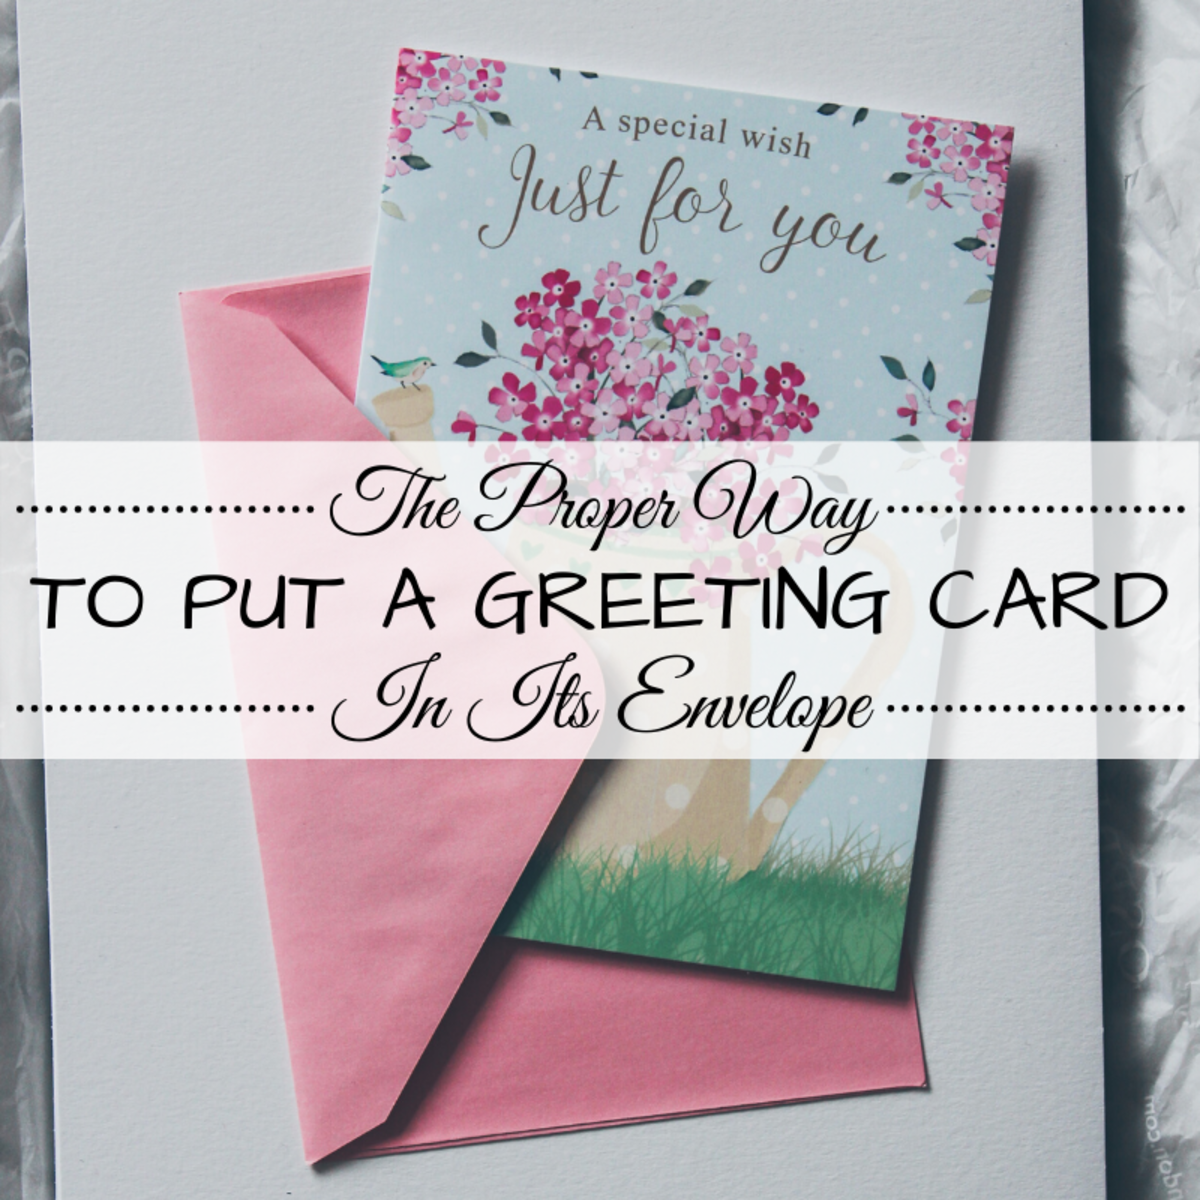 There's a right way to put a greeting card in its envelope? Who knew?